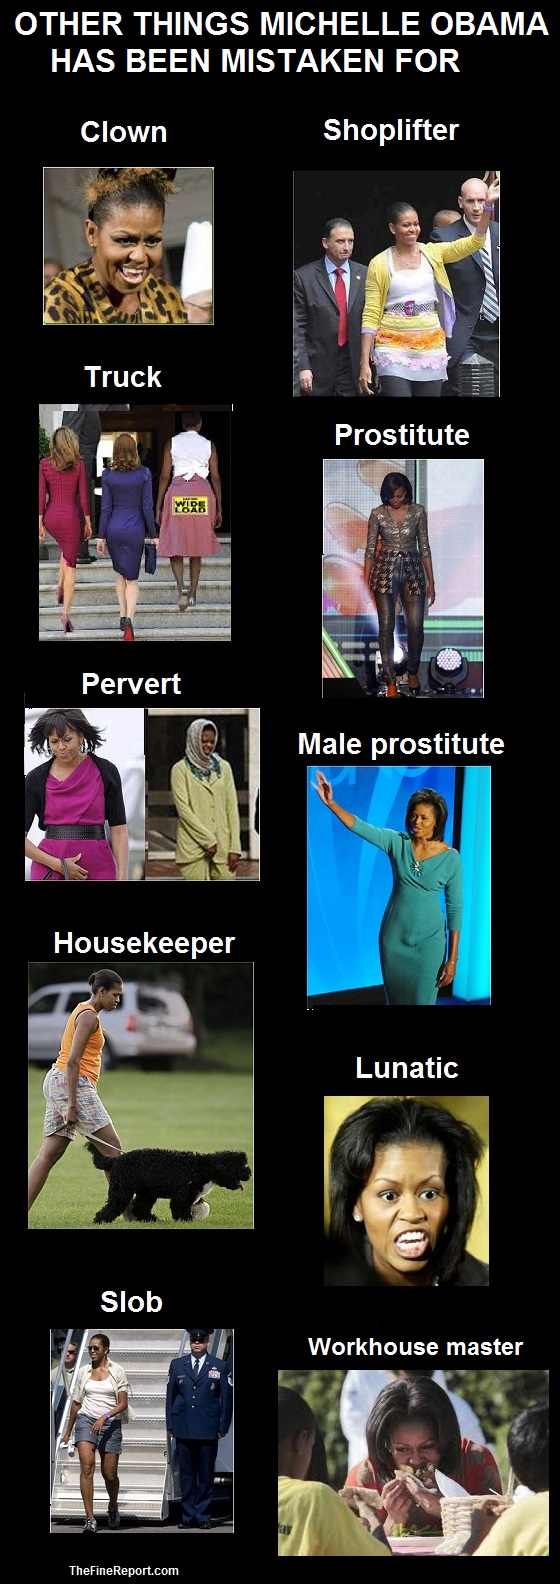 Michelle Obama other things mistaken for